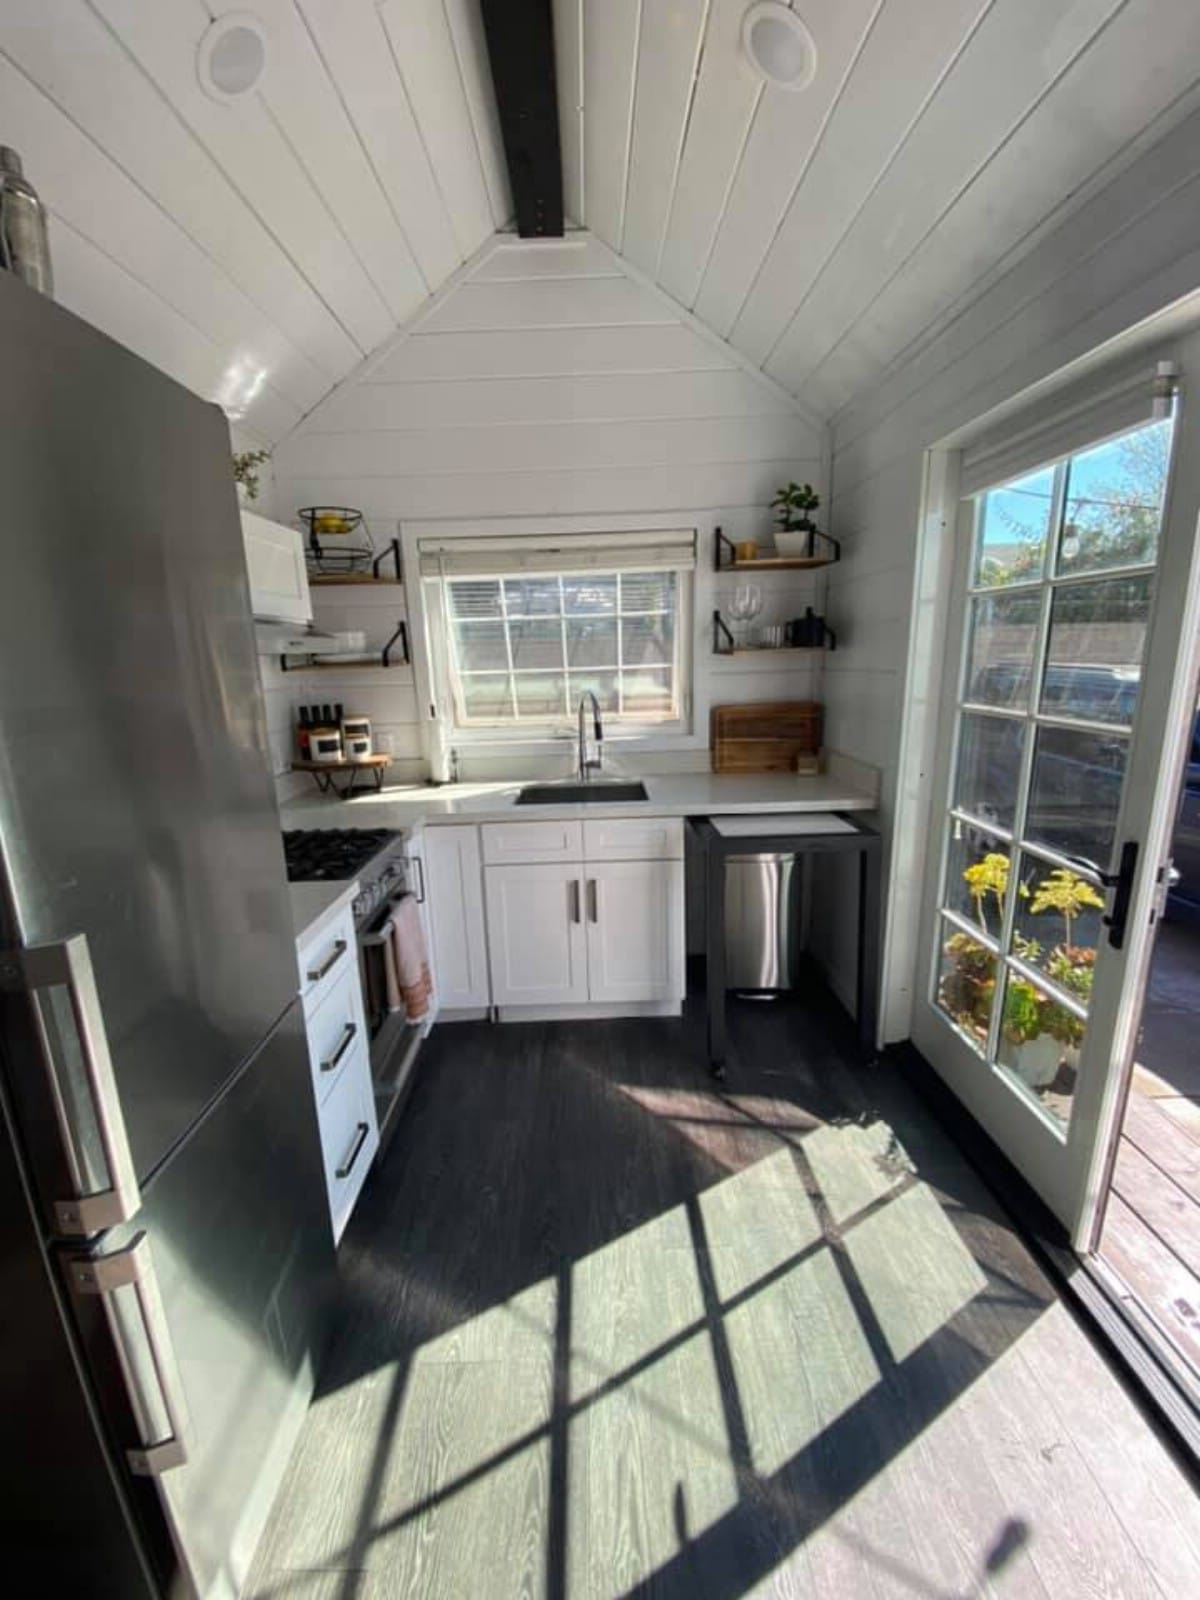 Kitchen window over sink in tiny home